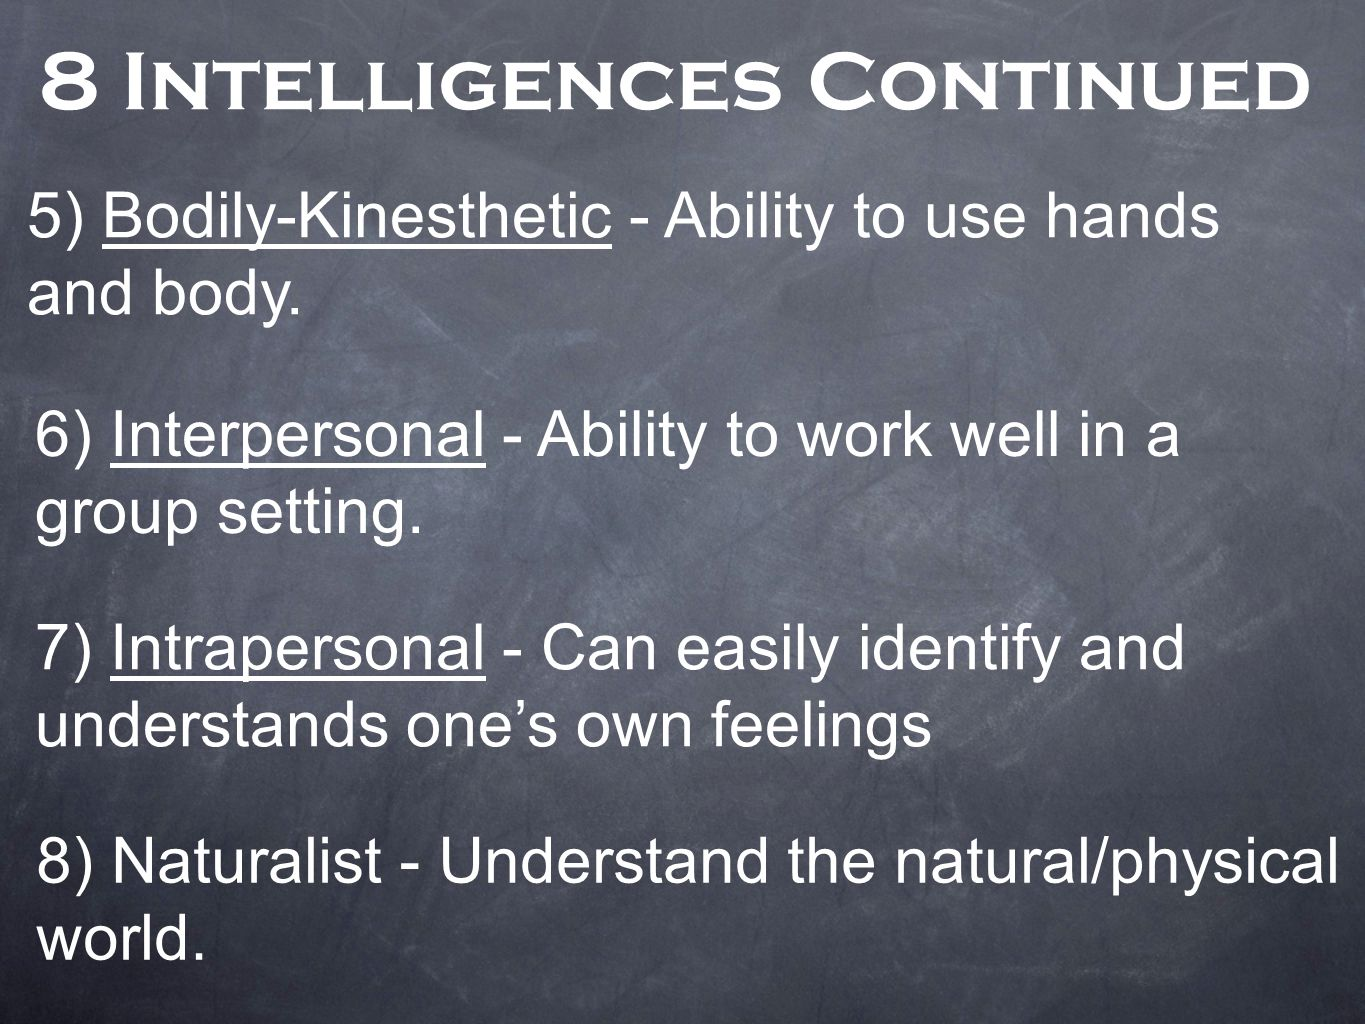 8 Intelligences Continued 8) Naturalist - Understand the natural/physical world.